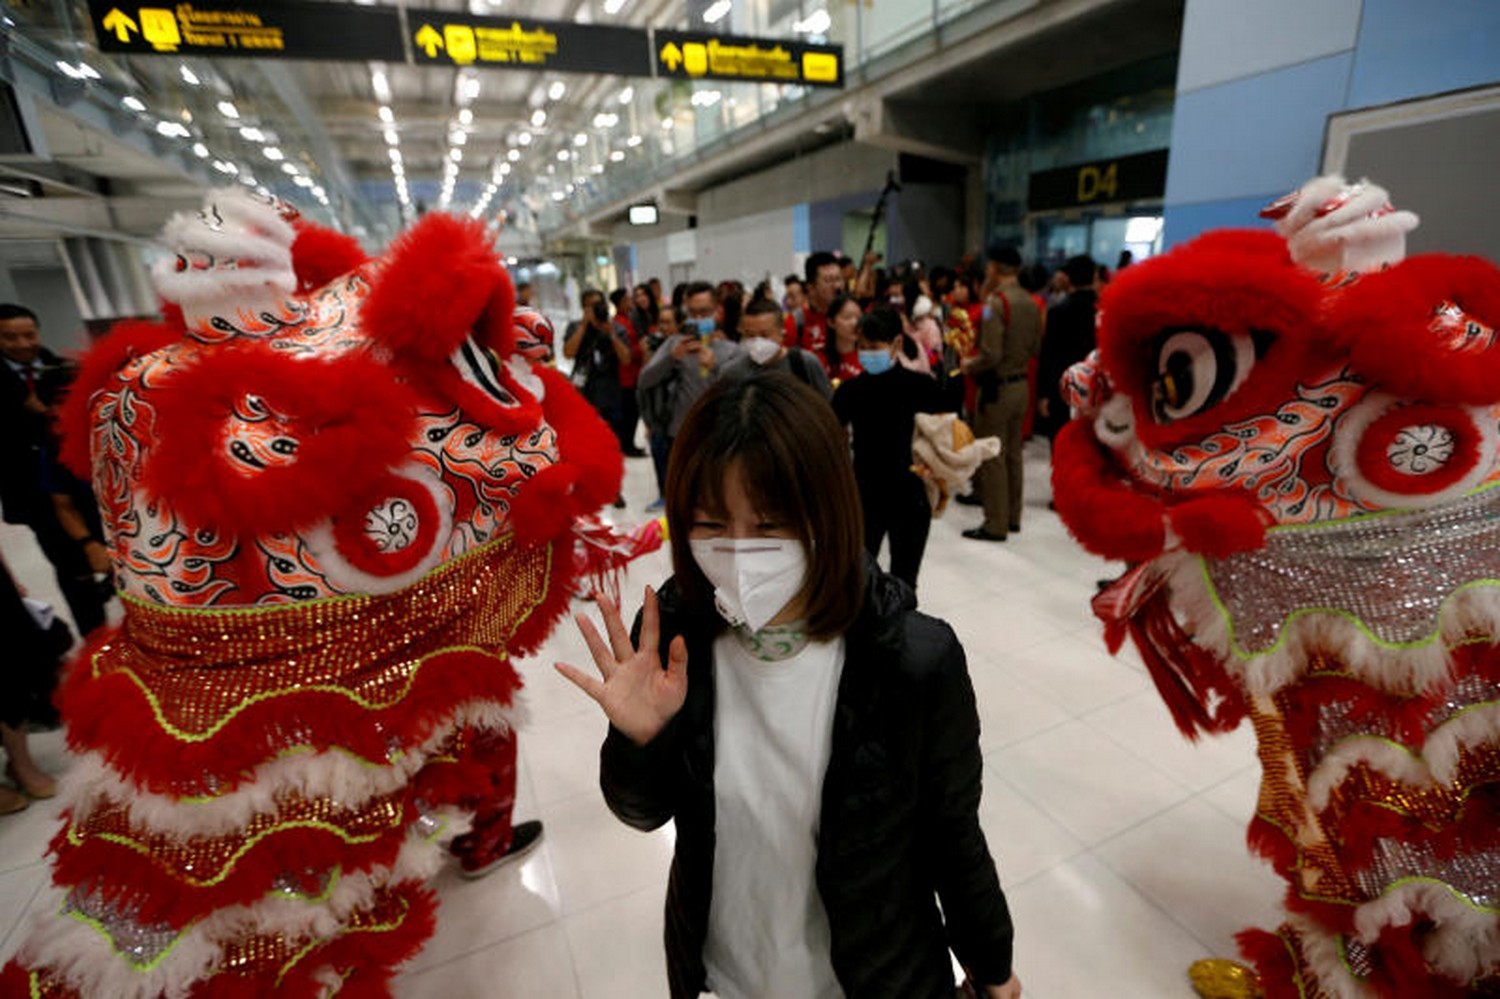 A Chinese tourist wears a mask as she arrives at Suvarnabhumi airport on Wednesday, ahead of the  Lunar New Year celebration in Bangkok. (Reuters photo)